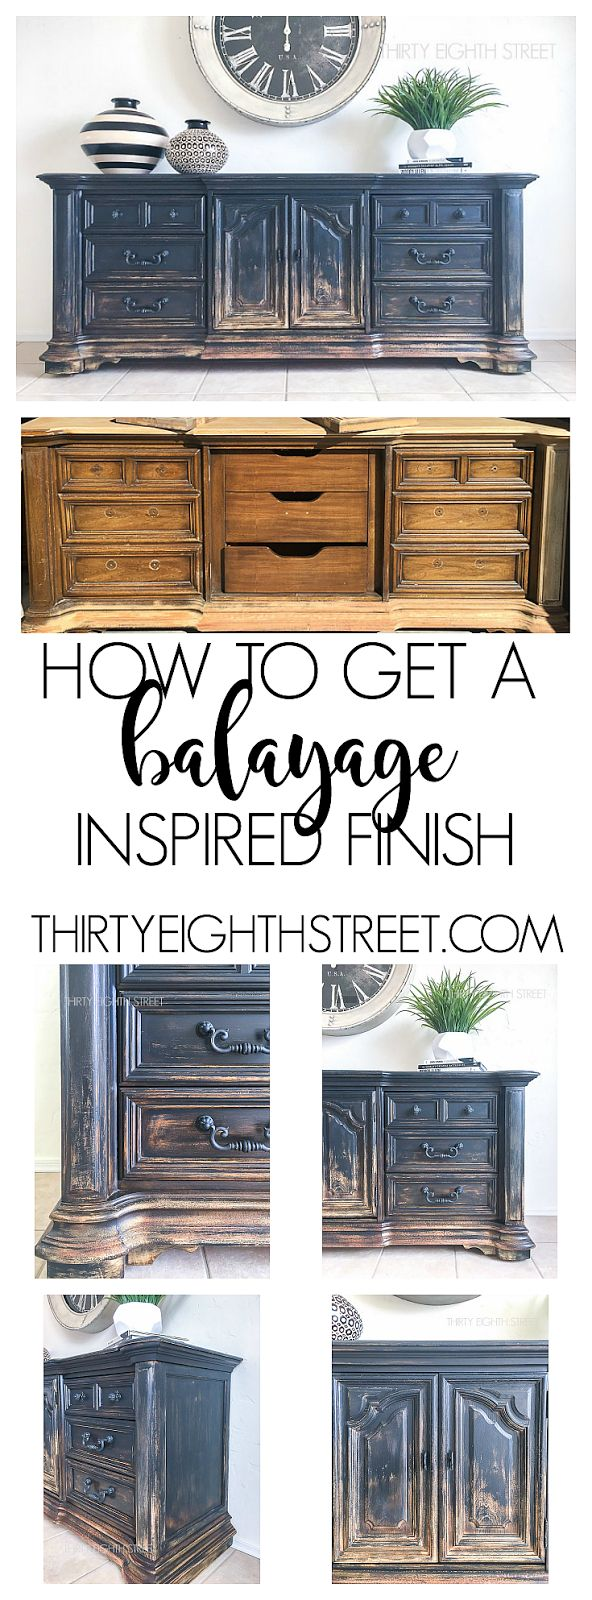 Balayage Coloring on Furniture by Thirty Eighth Street. Painting Technique designed to give your furniture a rustic farmhouse finish!